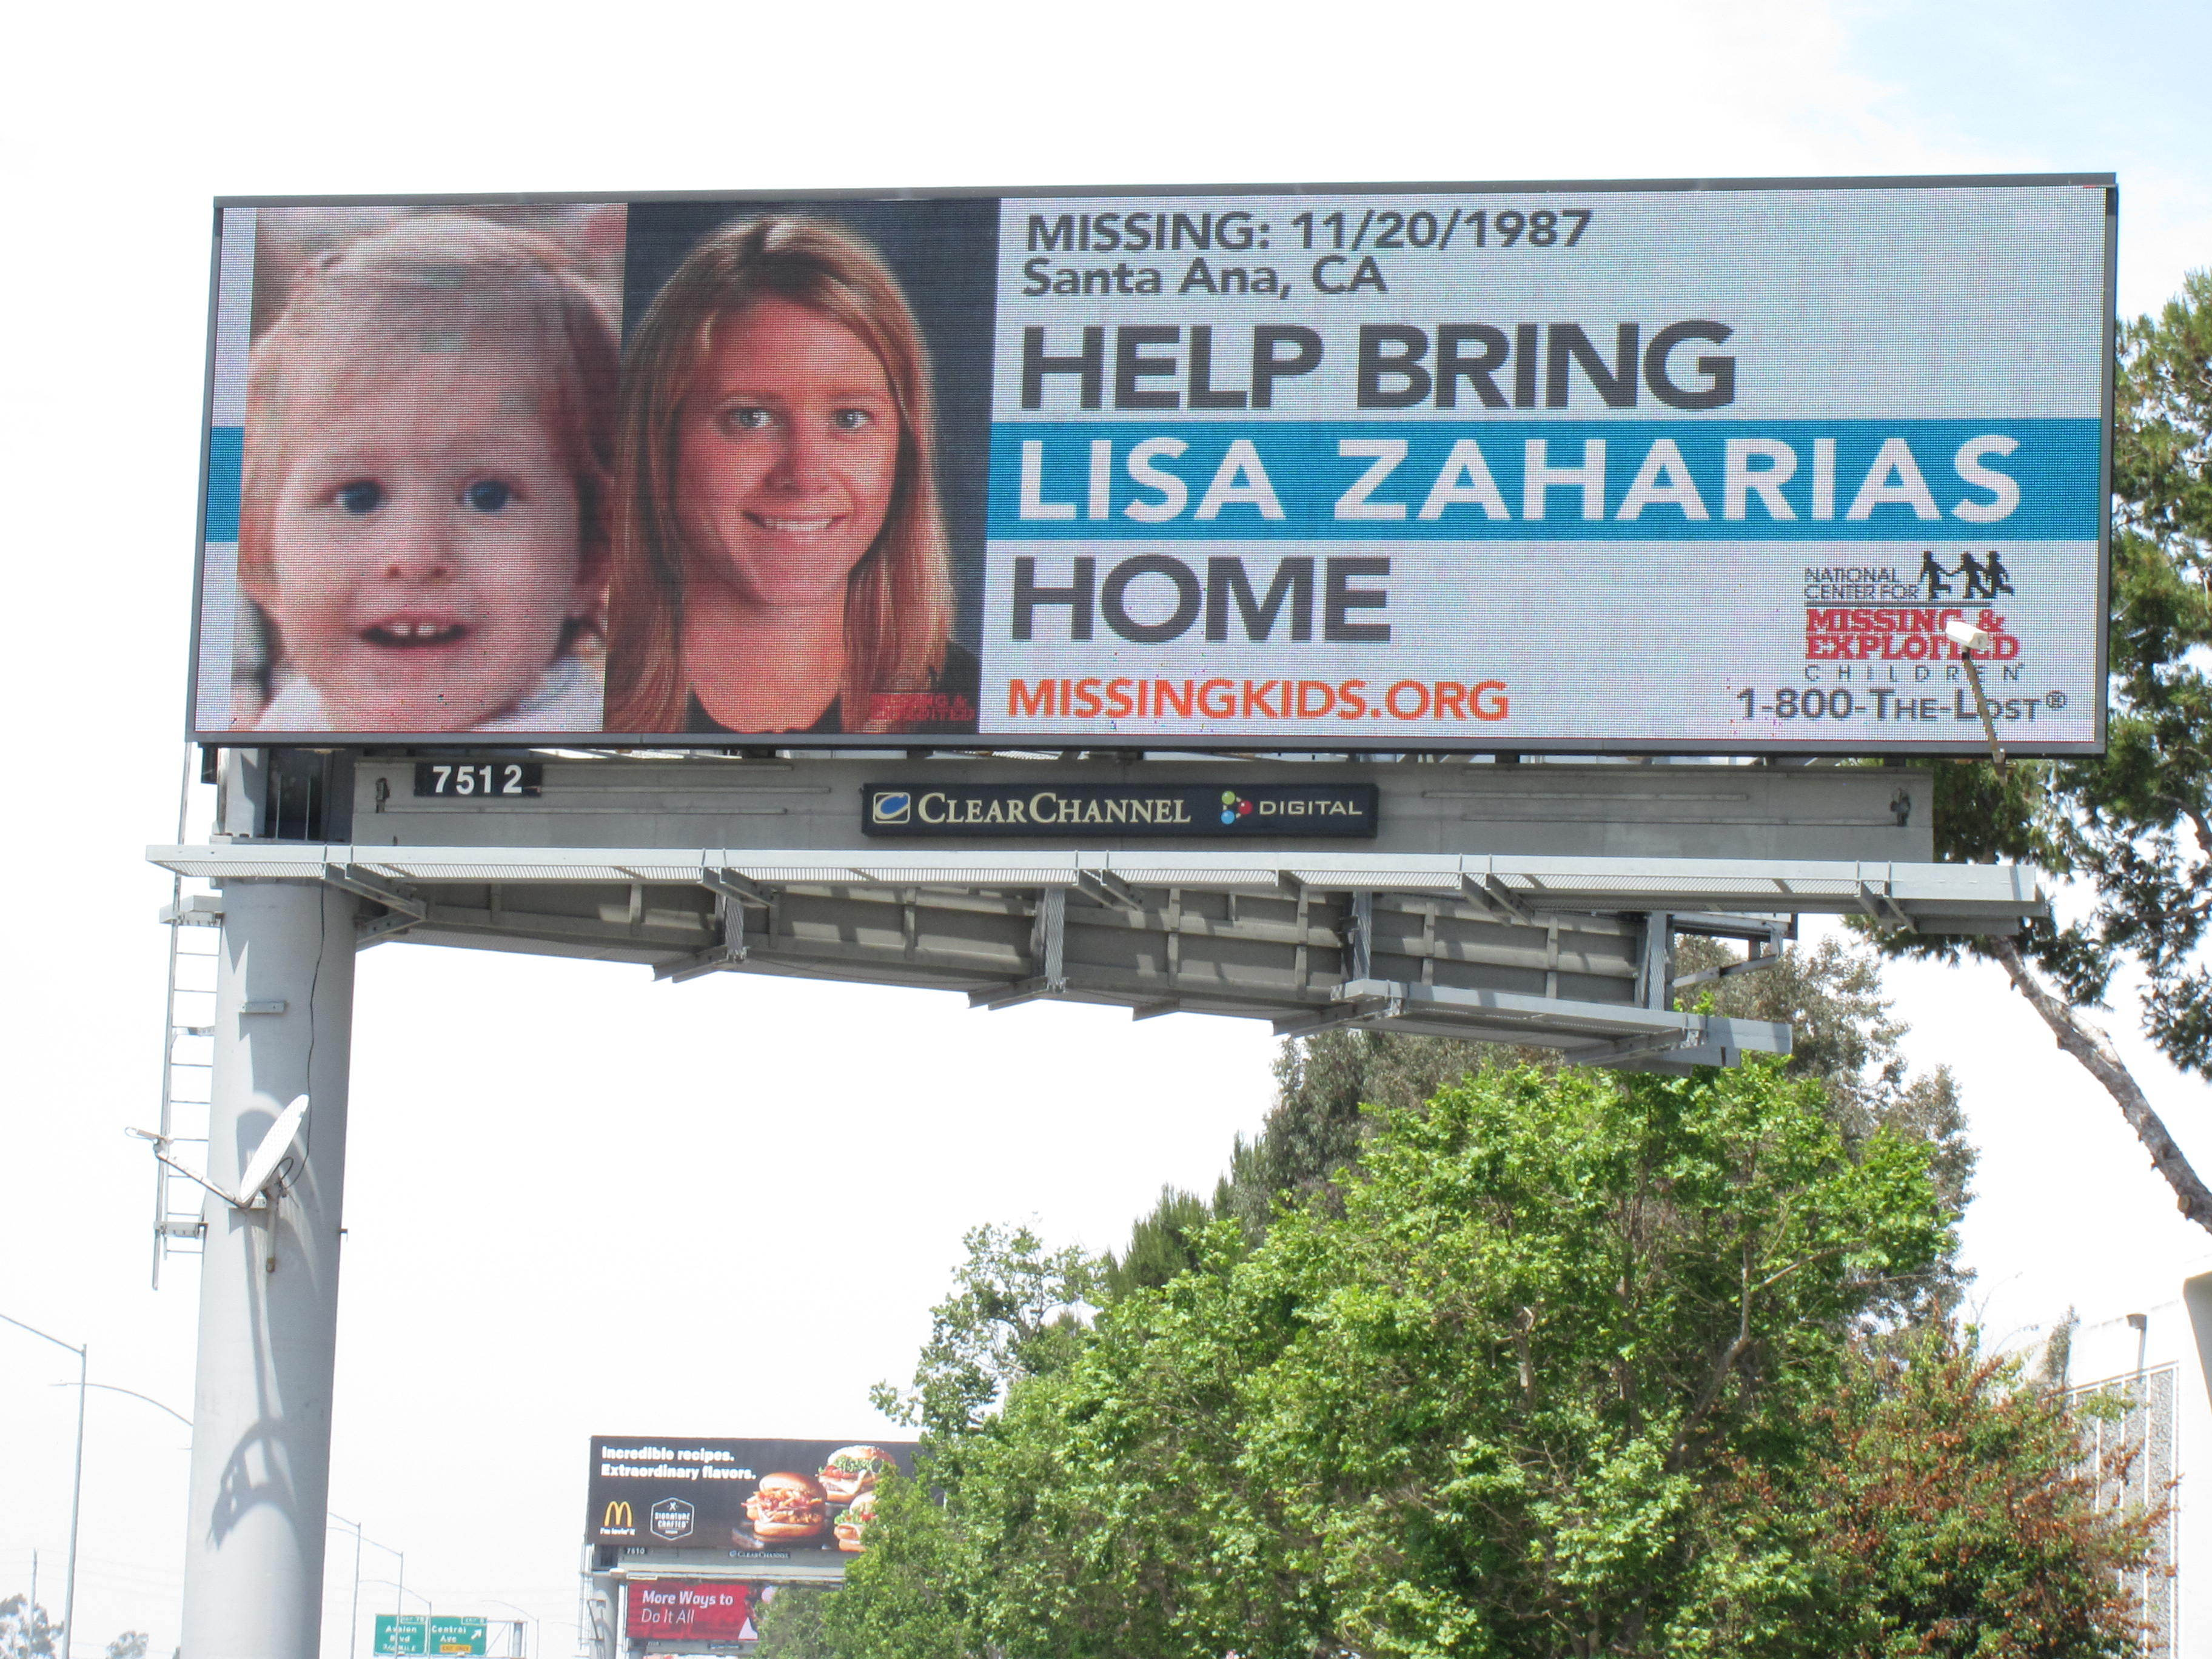 Lisa Zaharias, missing since 1987, now has a digital billboard to help bring her home. (Photo: Business Wire)